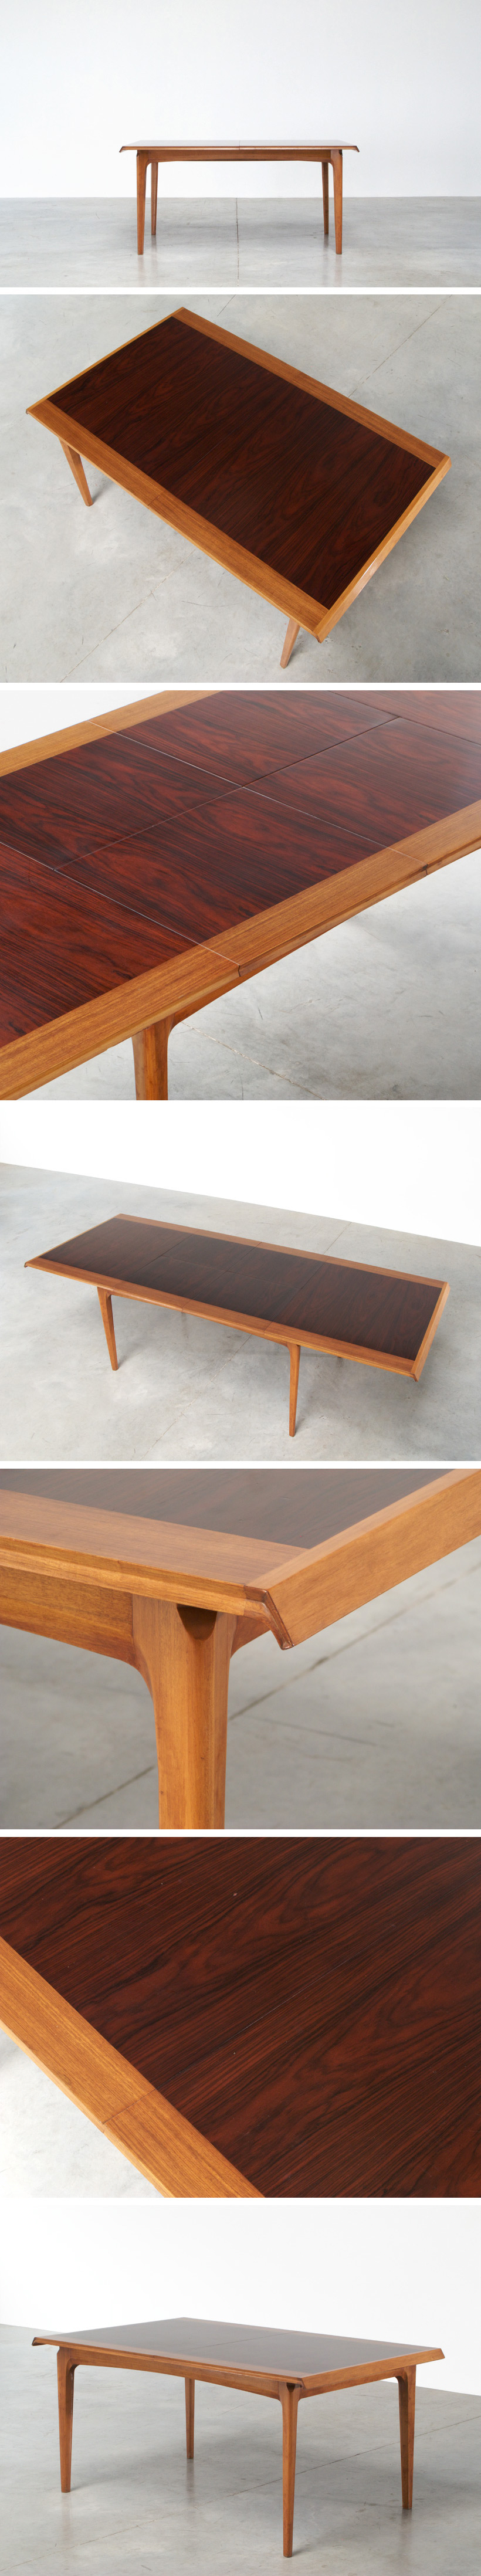 De Coene Madison dinning table rosewood and walnut 1958 Large